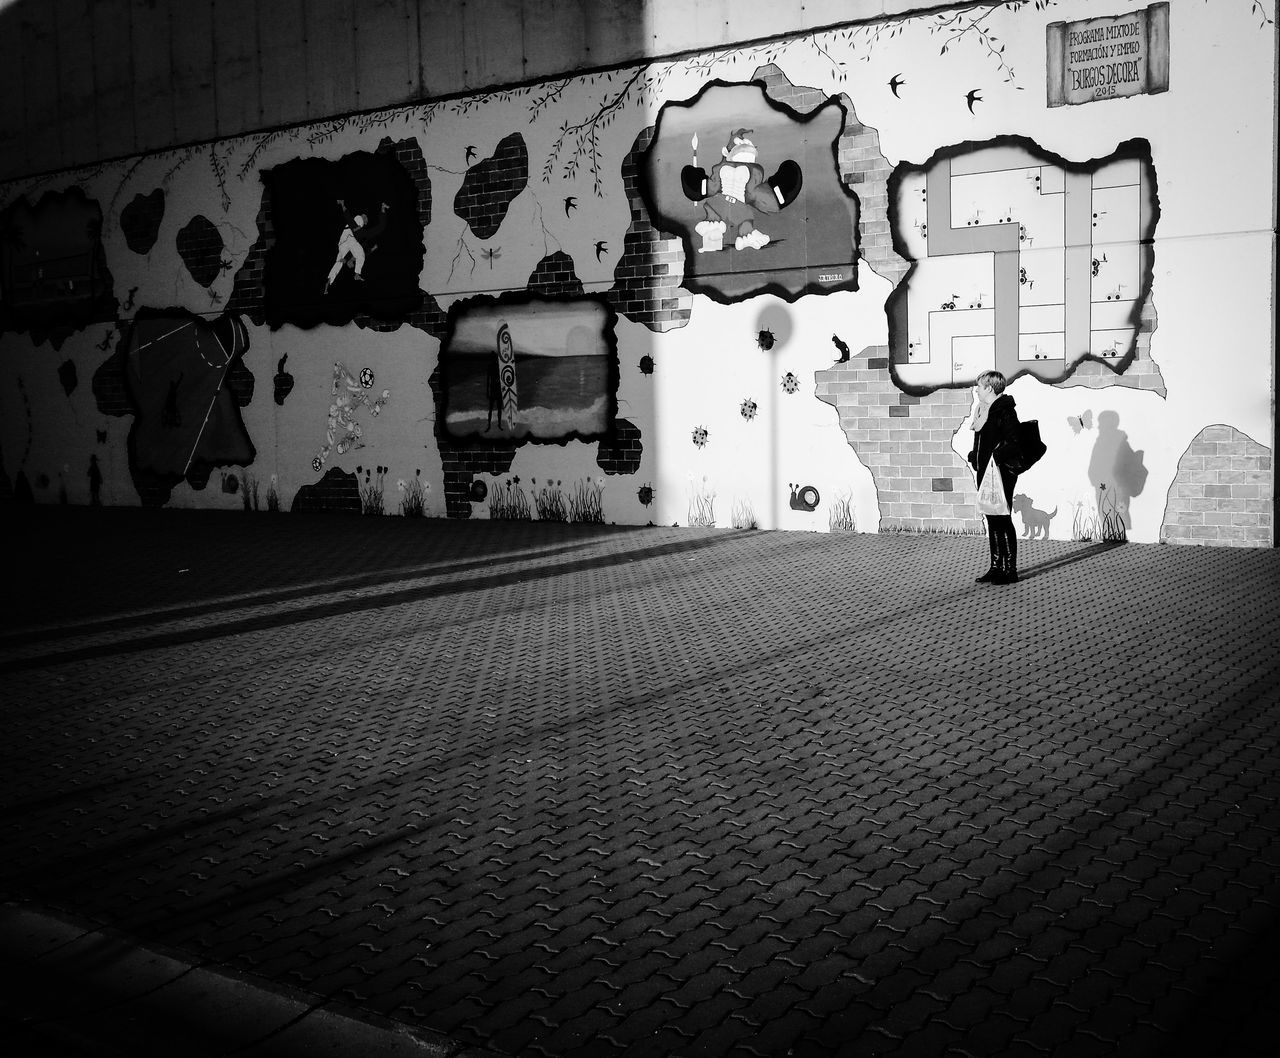 Graffiti Walking Men One Person Only Men Spray Paint One Man Only Outdoors People Adult Day Adults Only Chance Encounters EyeEm Best Shots - Landscape EyeEm Best Shots - Nature Eyeem Photography EyeEmbestshots Illuminated The Week On Eyeem Eye4photography Streetphoto_color Shootermag EyeEm Best Shots EyeEm Bnw The Week Of Eyeem Blanco Y Negro. Eyemphotography Burgos, Spain